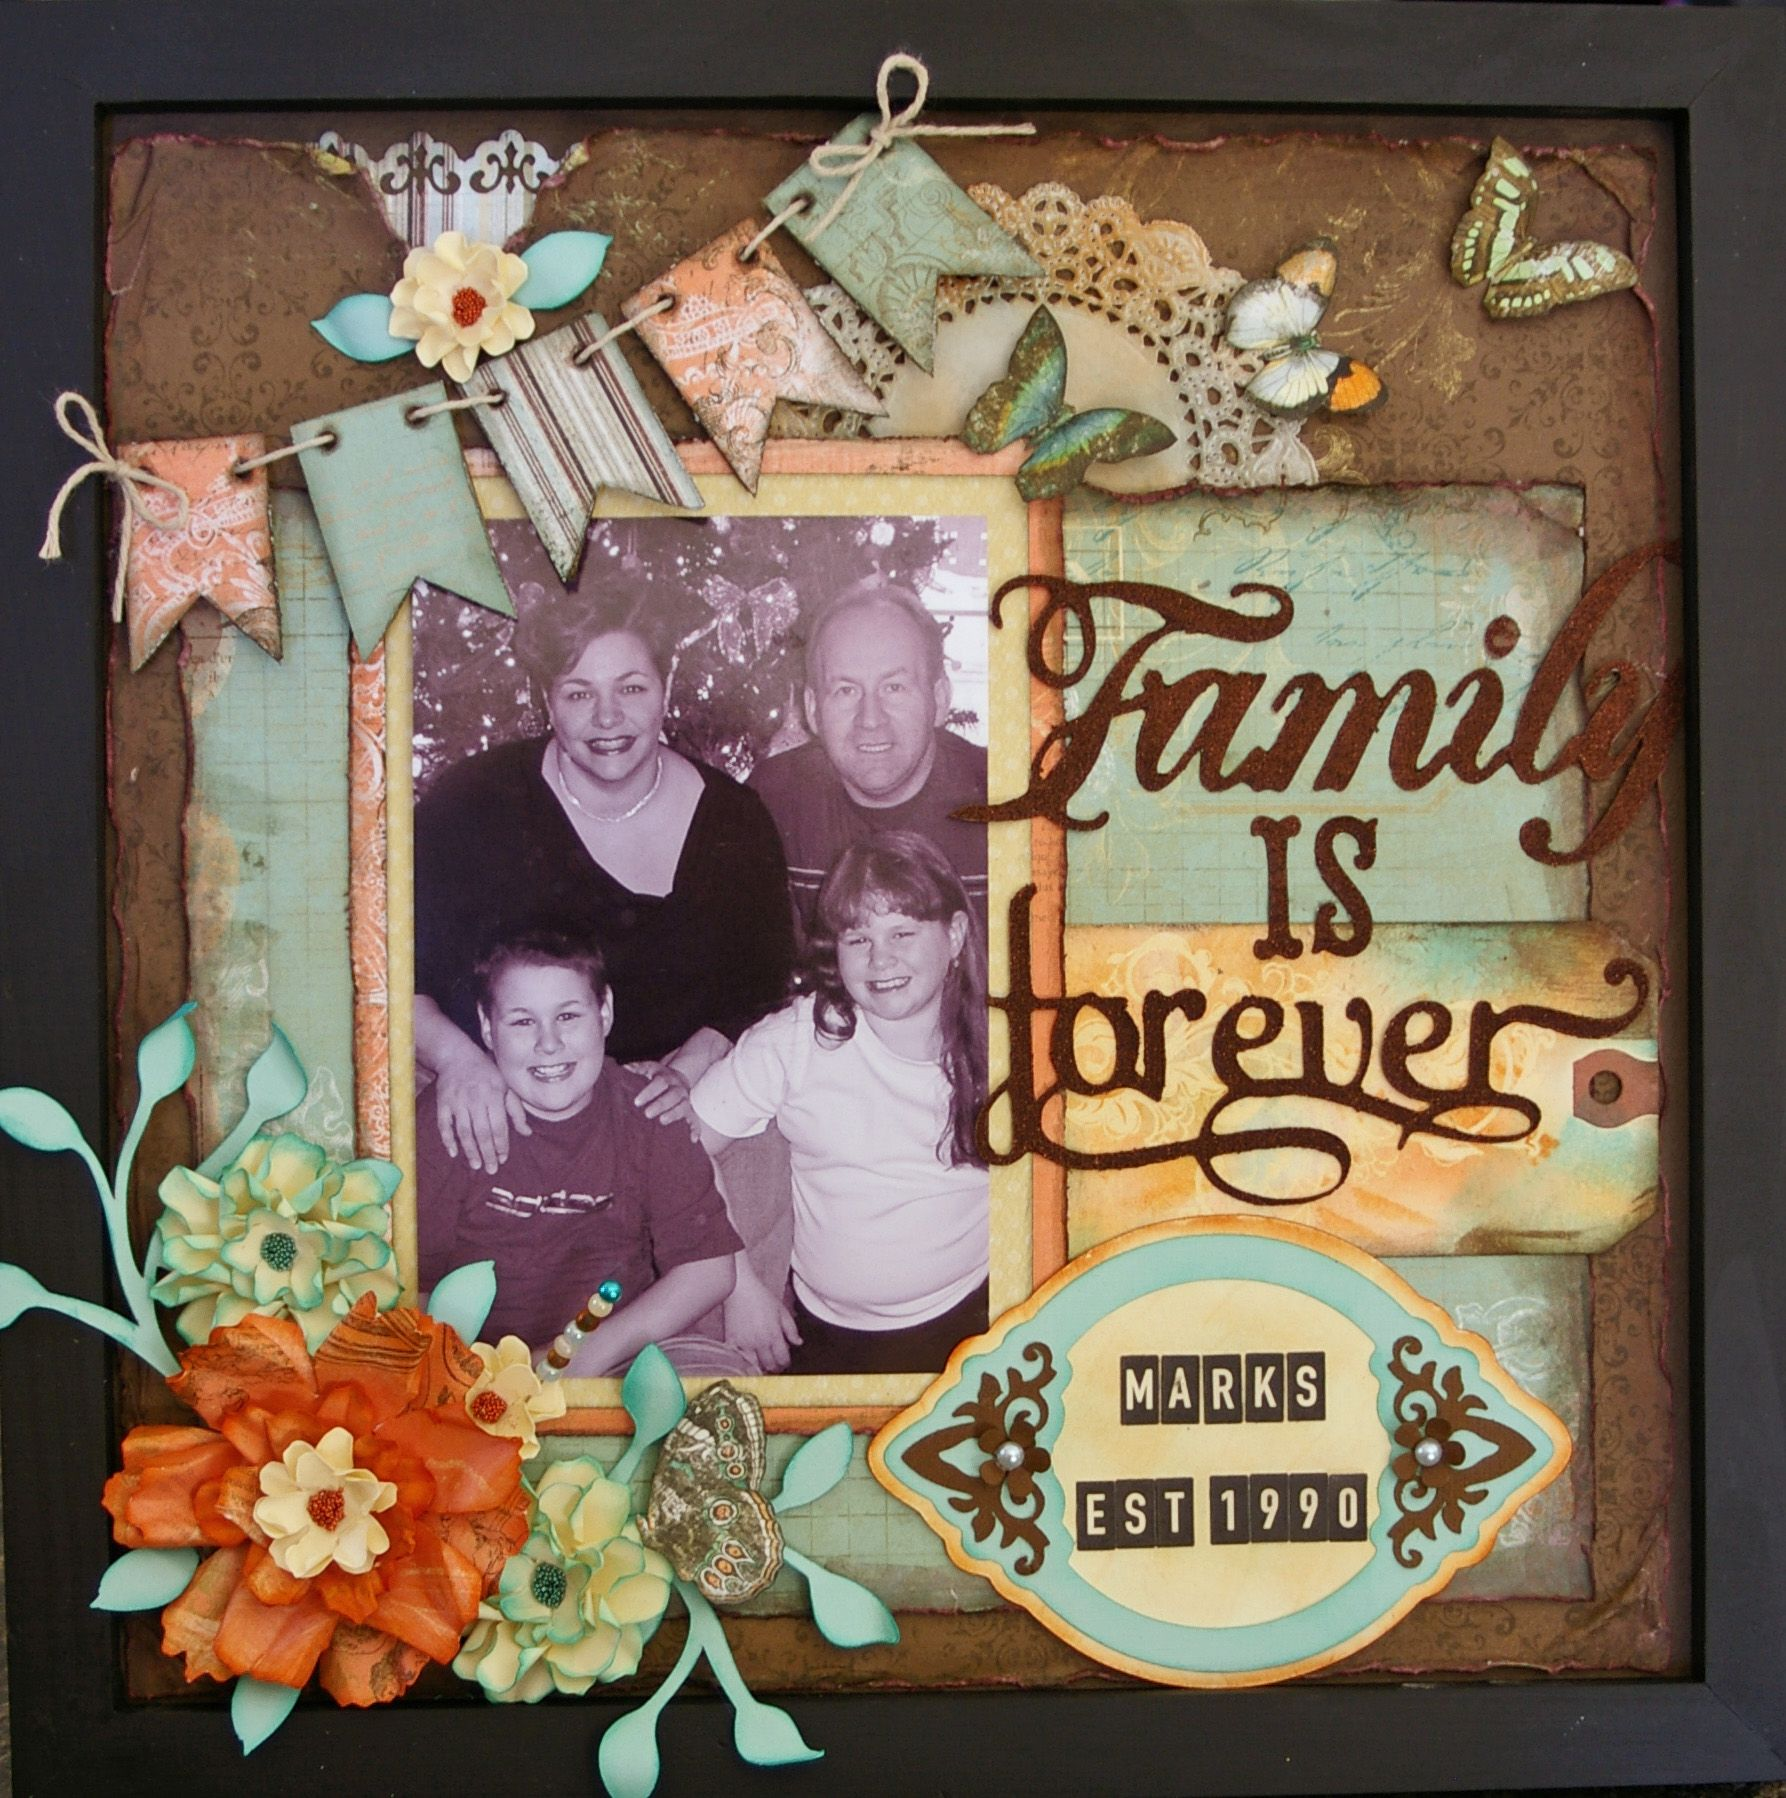 Family scrapbook ideas on pinterest - Great Idea Family Is Forever 3d Frame Scrapbook Com